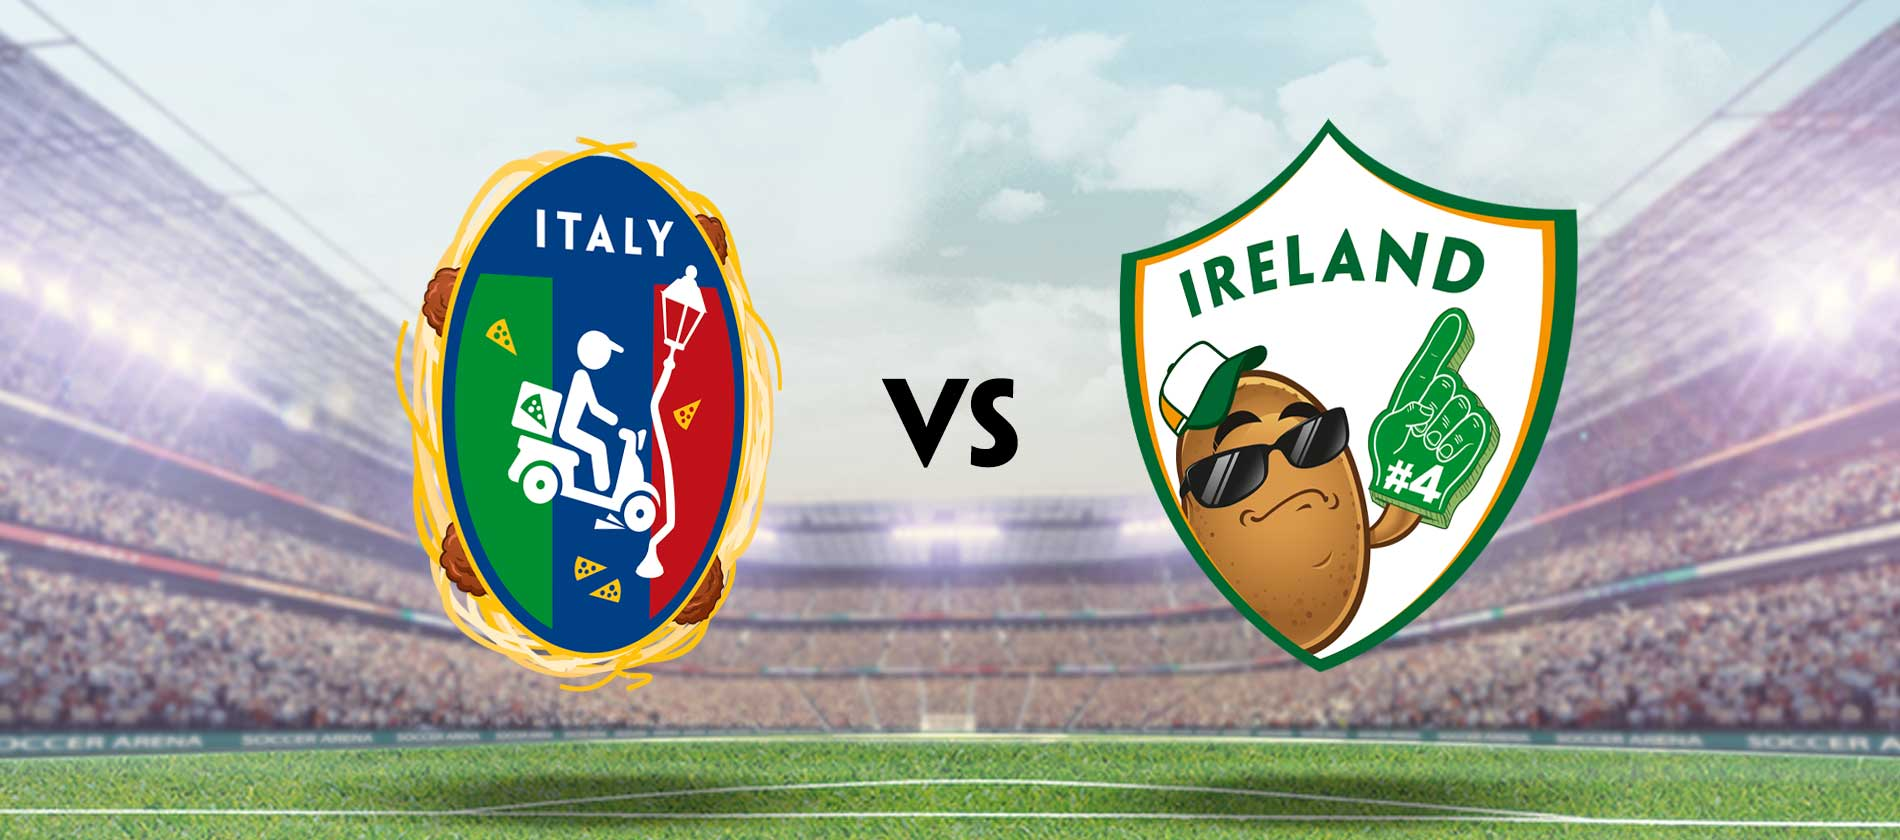 Italy ireland betting preview tipico betting shops in ireland